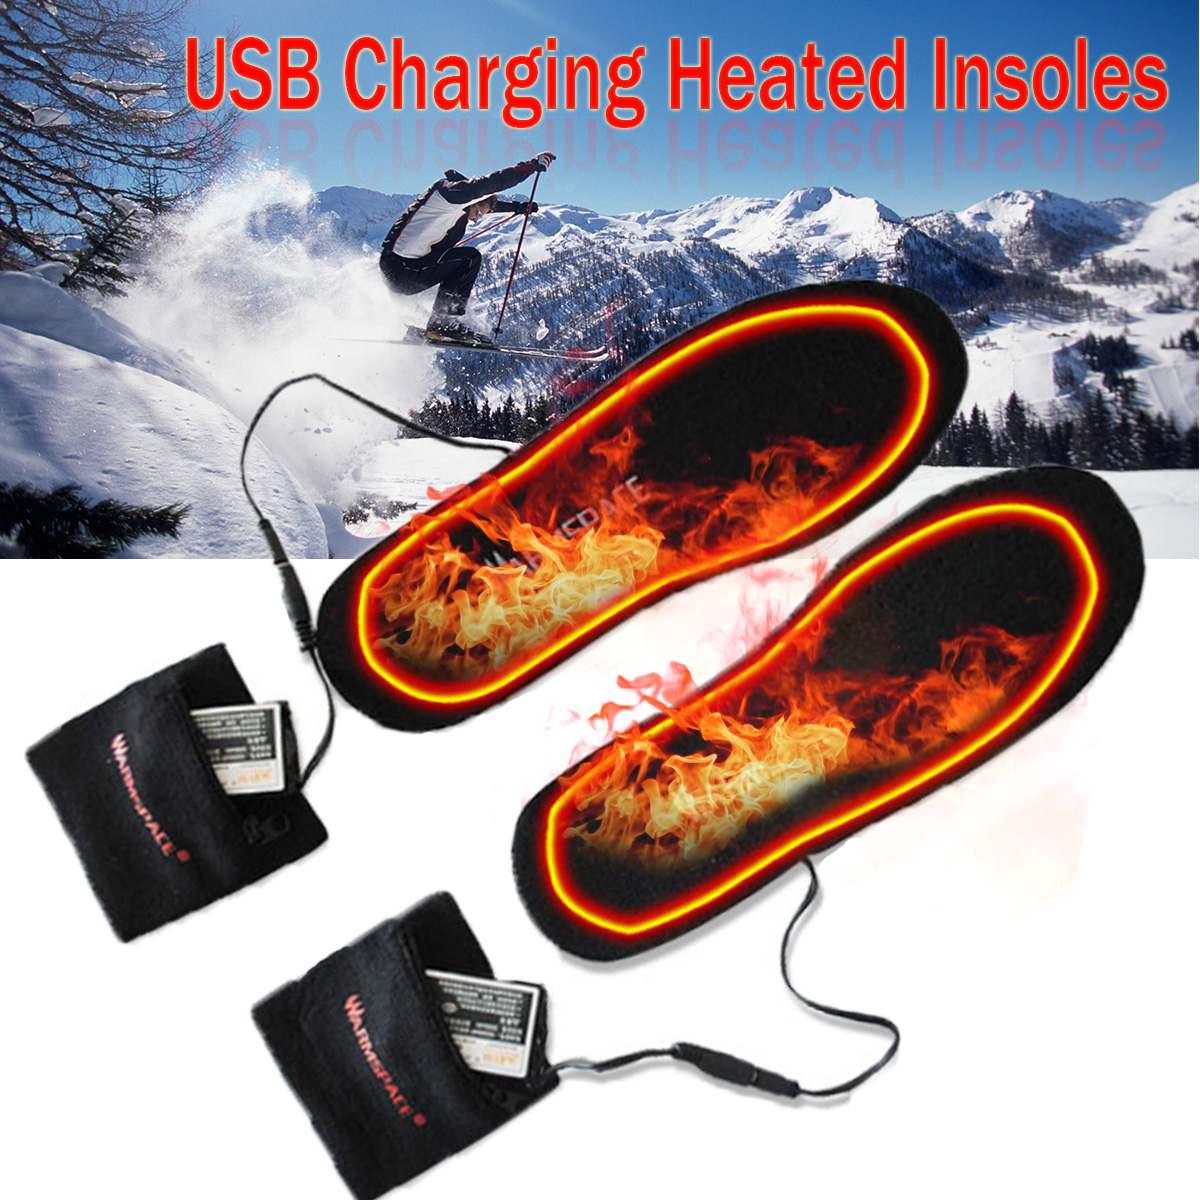 Electric Heated Insoles Winter Men Women Heated Shoe Inserts Charged Insoles For Shoes Boot Warm Socks USB Charging Cables